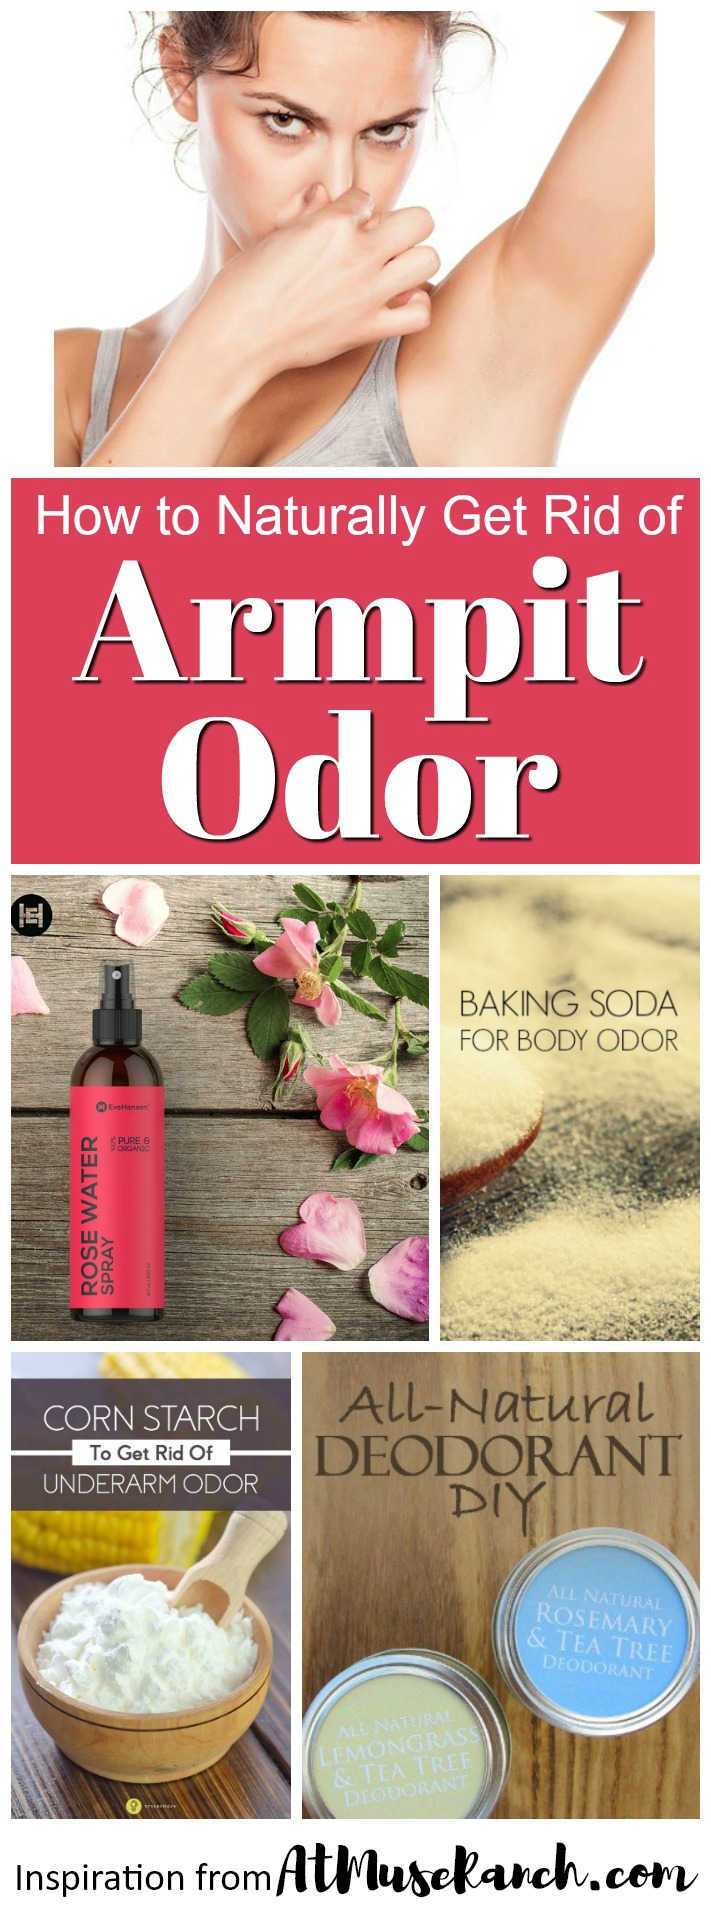 How to Get Rid of Armpit Odor Naturally